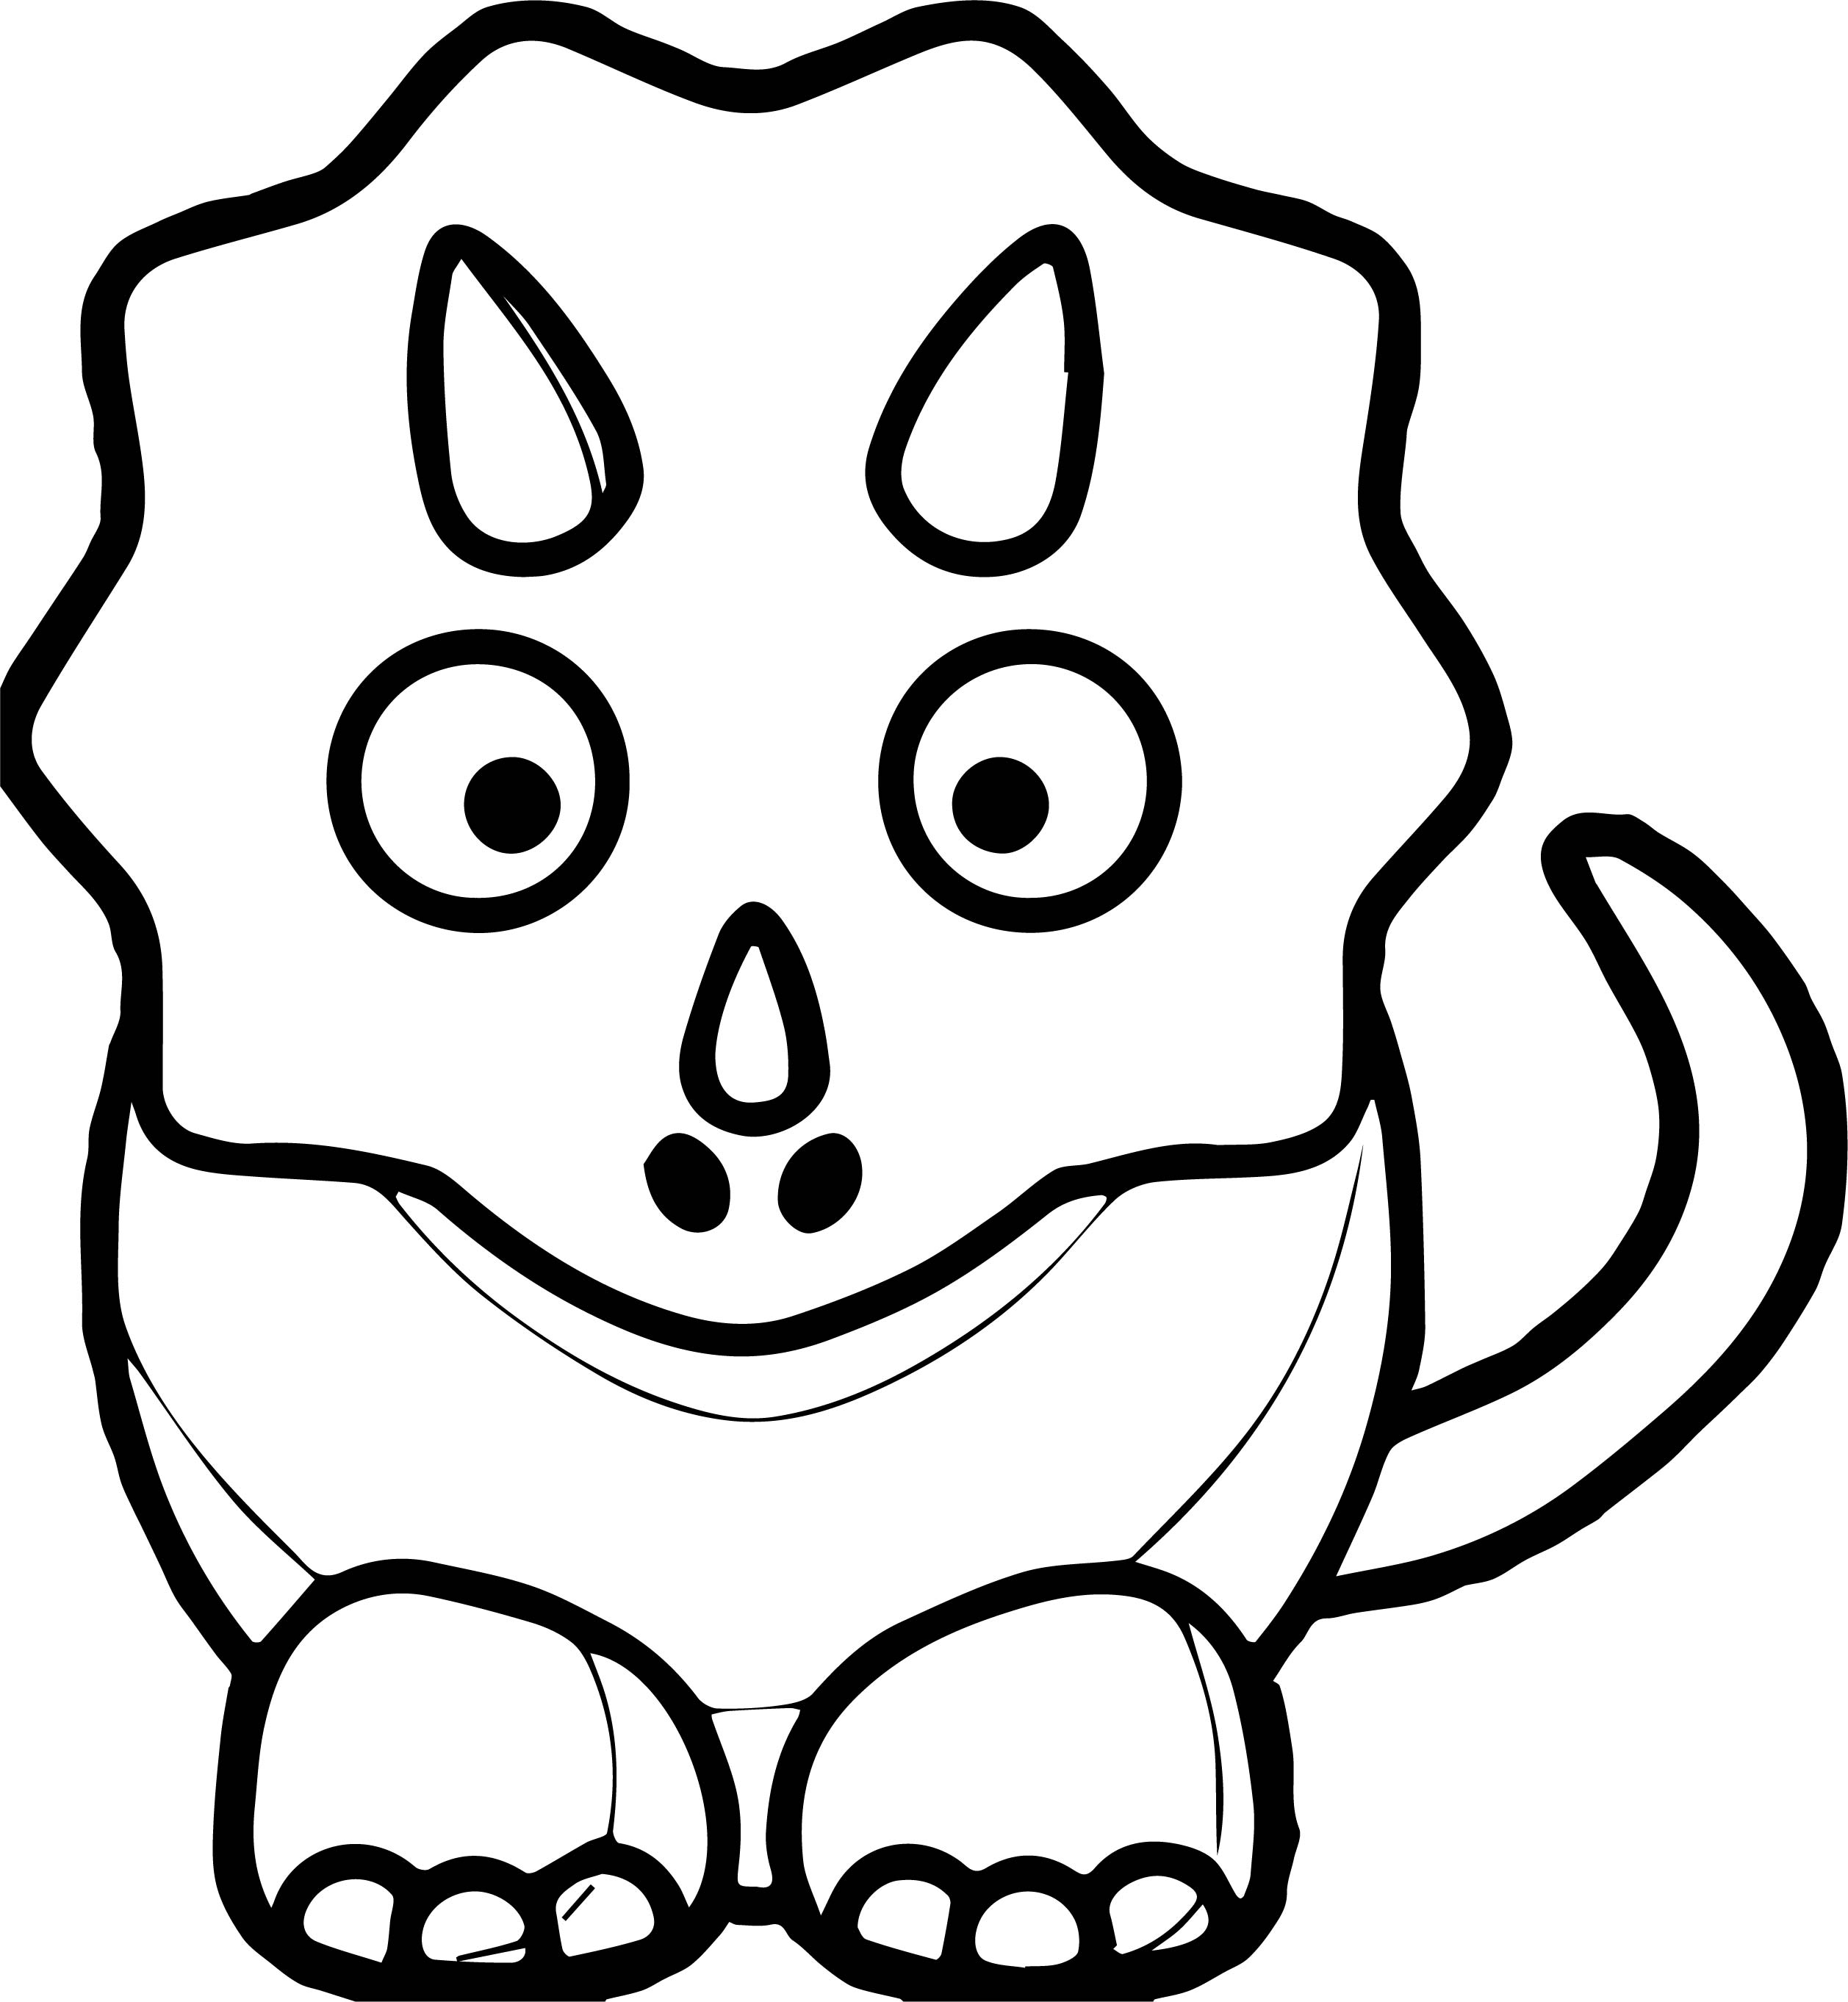 2515x2725 Cute Dinosaur Black And White Baby Blue Dinosaur Coloring Page